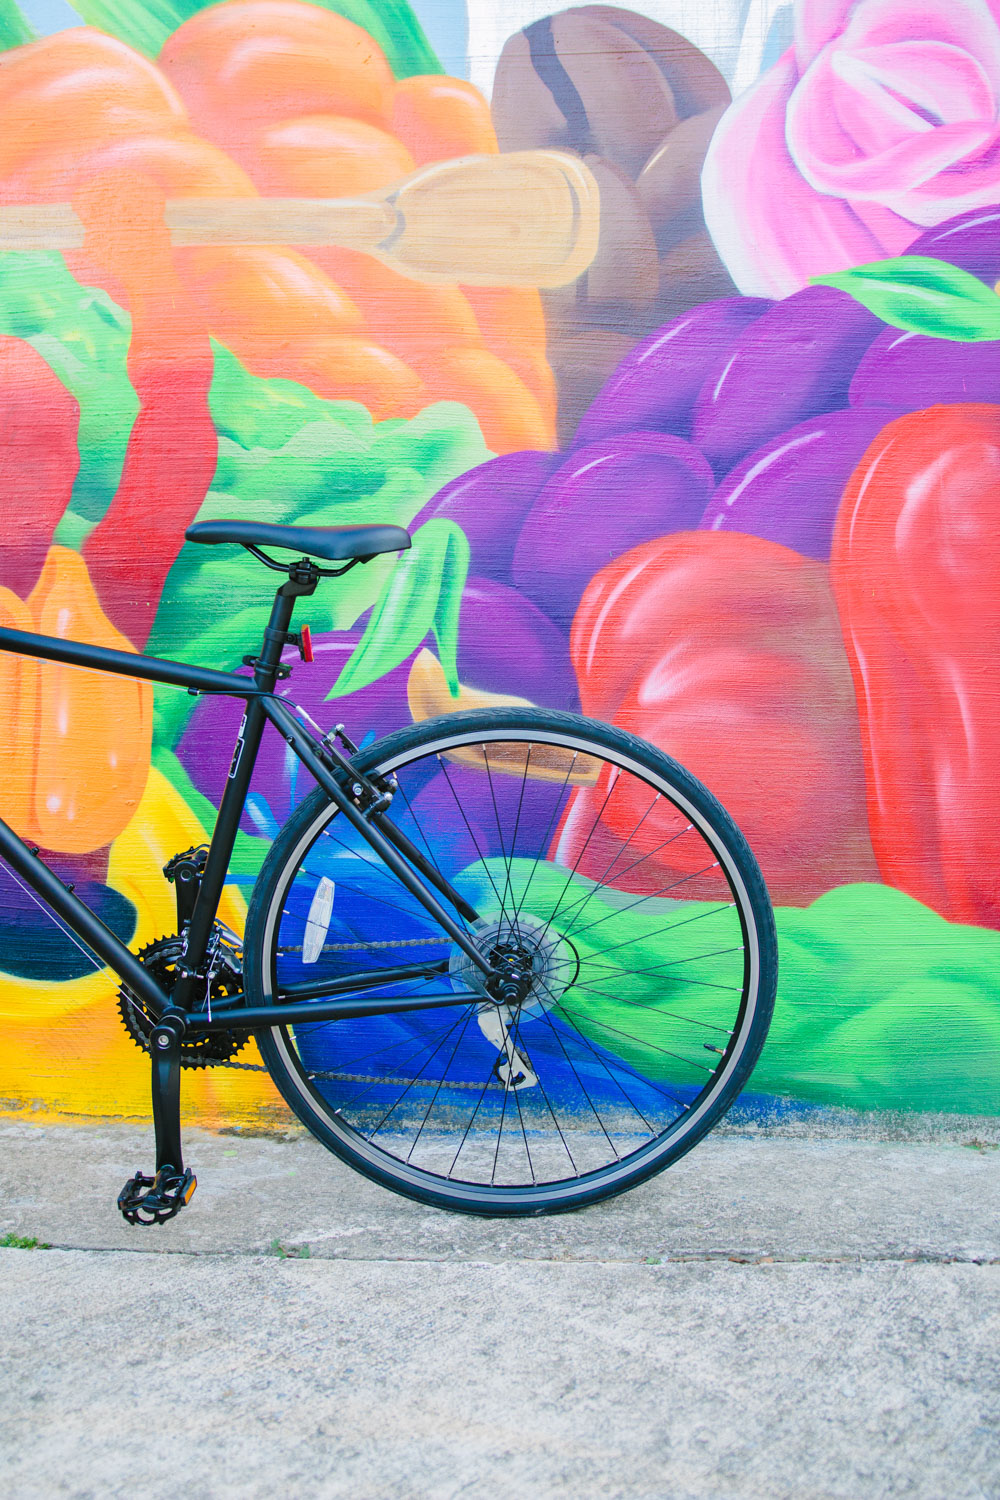 Vibrant colors by mural and graffiti artists J. Dante Bard and Troy Duff